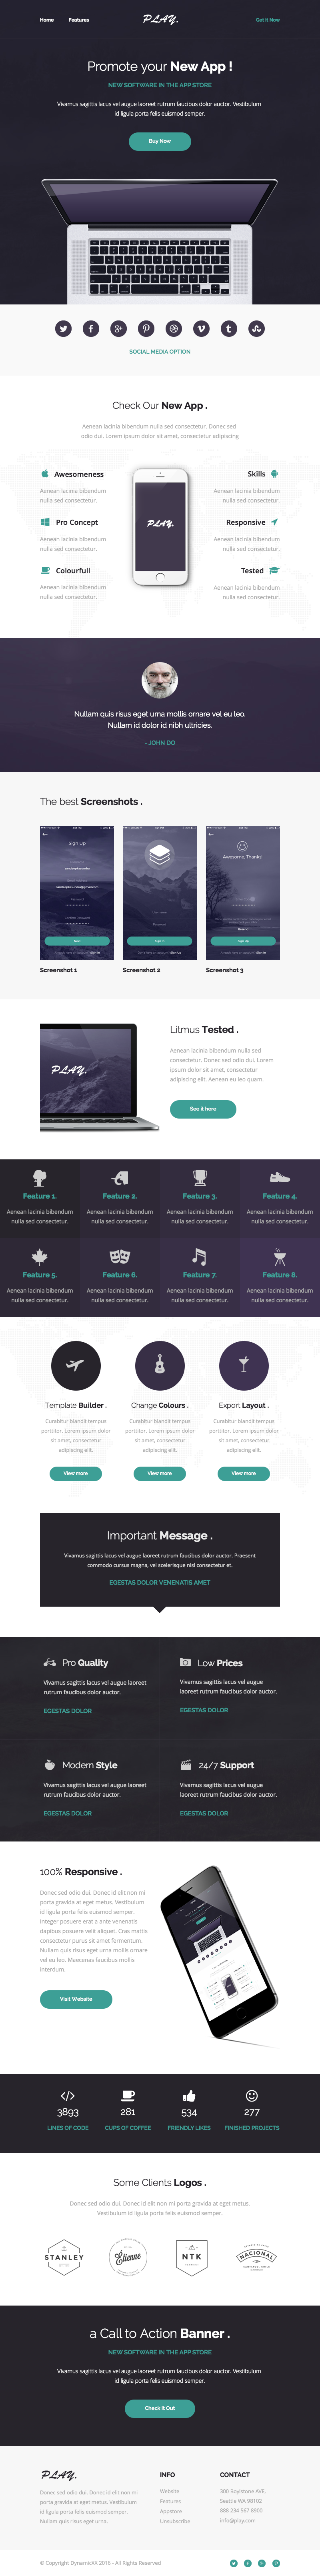 Play - Responsive Email + Online Template Builder by DynamicXX ...